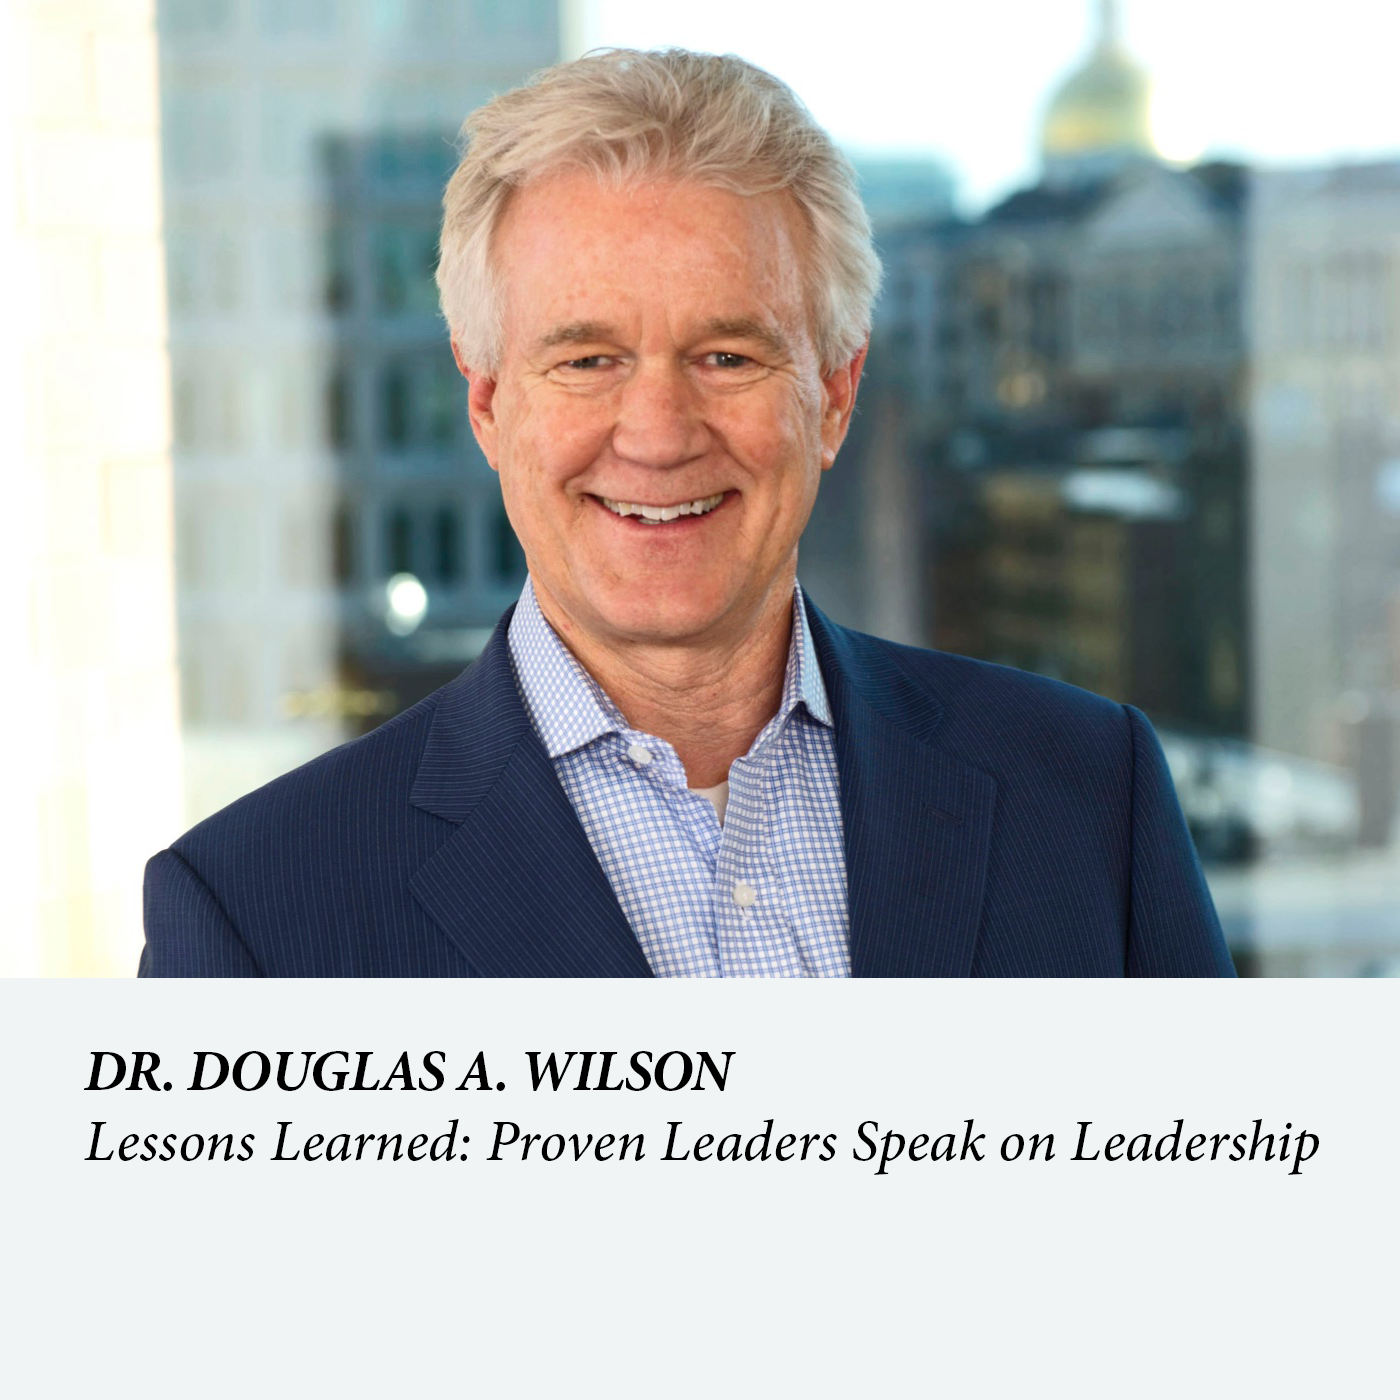 Lessons Learned: Proven Leaders Speak on Leadership - Dr. Douglas A. Wilson